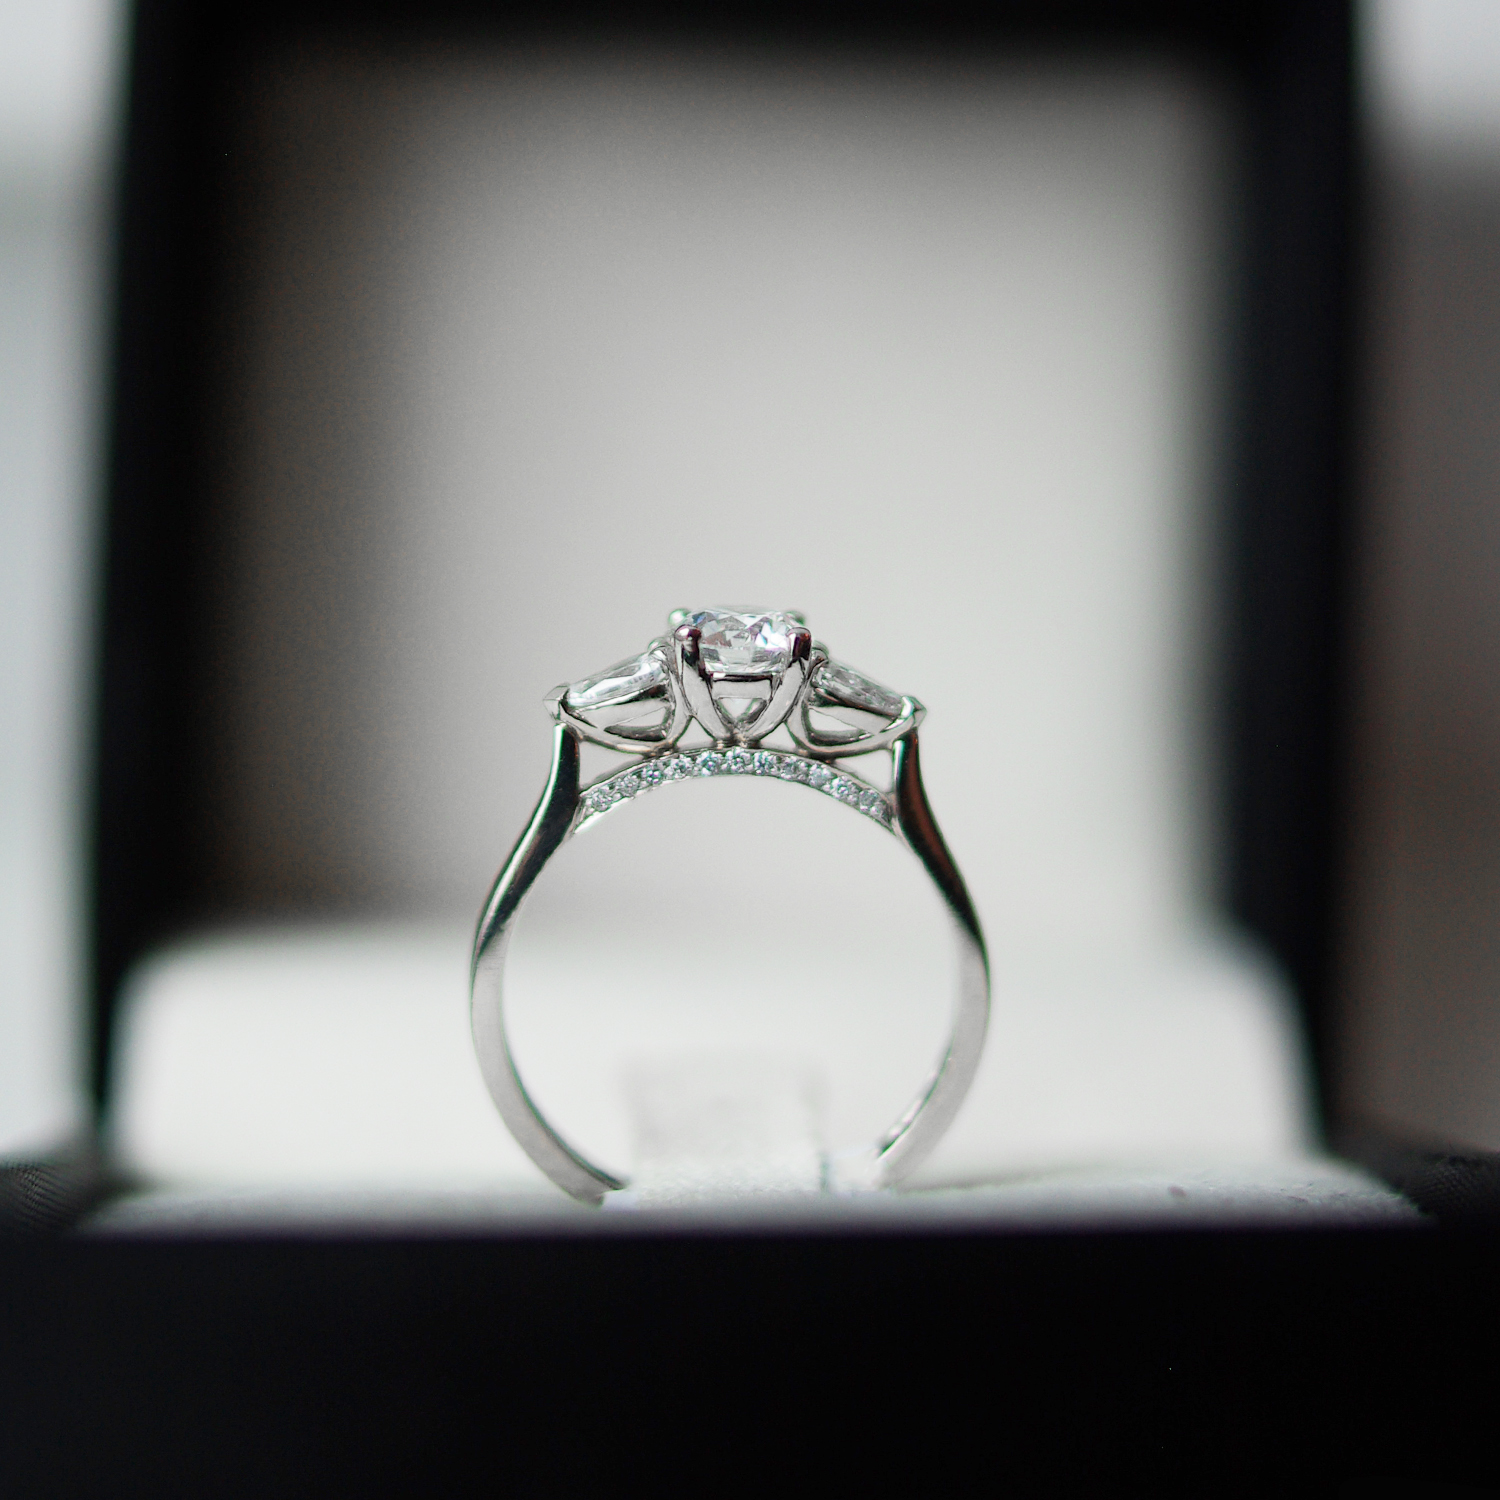 Trilogy Engagement Ring With a Round Brilliant Cut Diamond With Pear Cut Diamond Outers